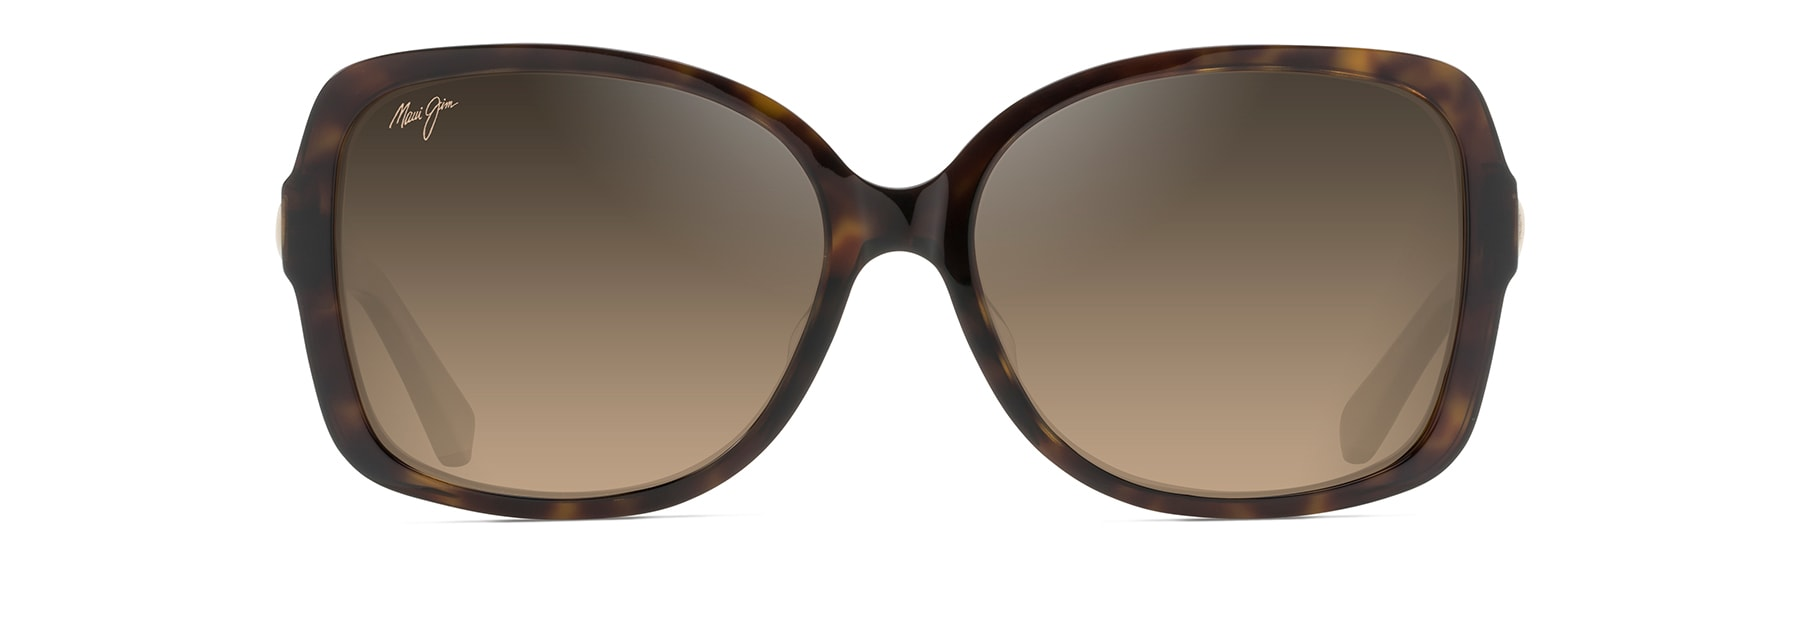 ba3d89671161d Melika Polarised Sunglasses